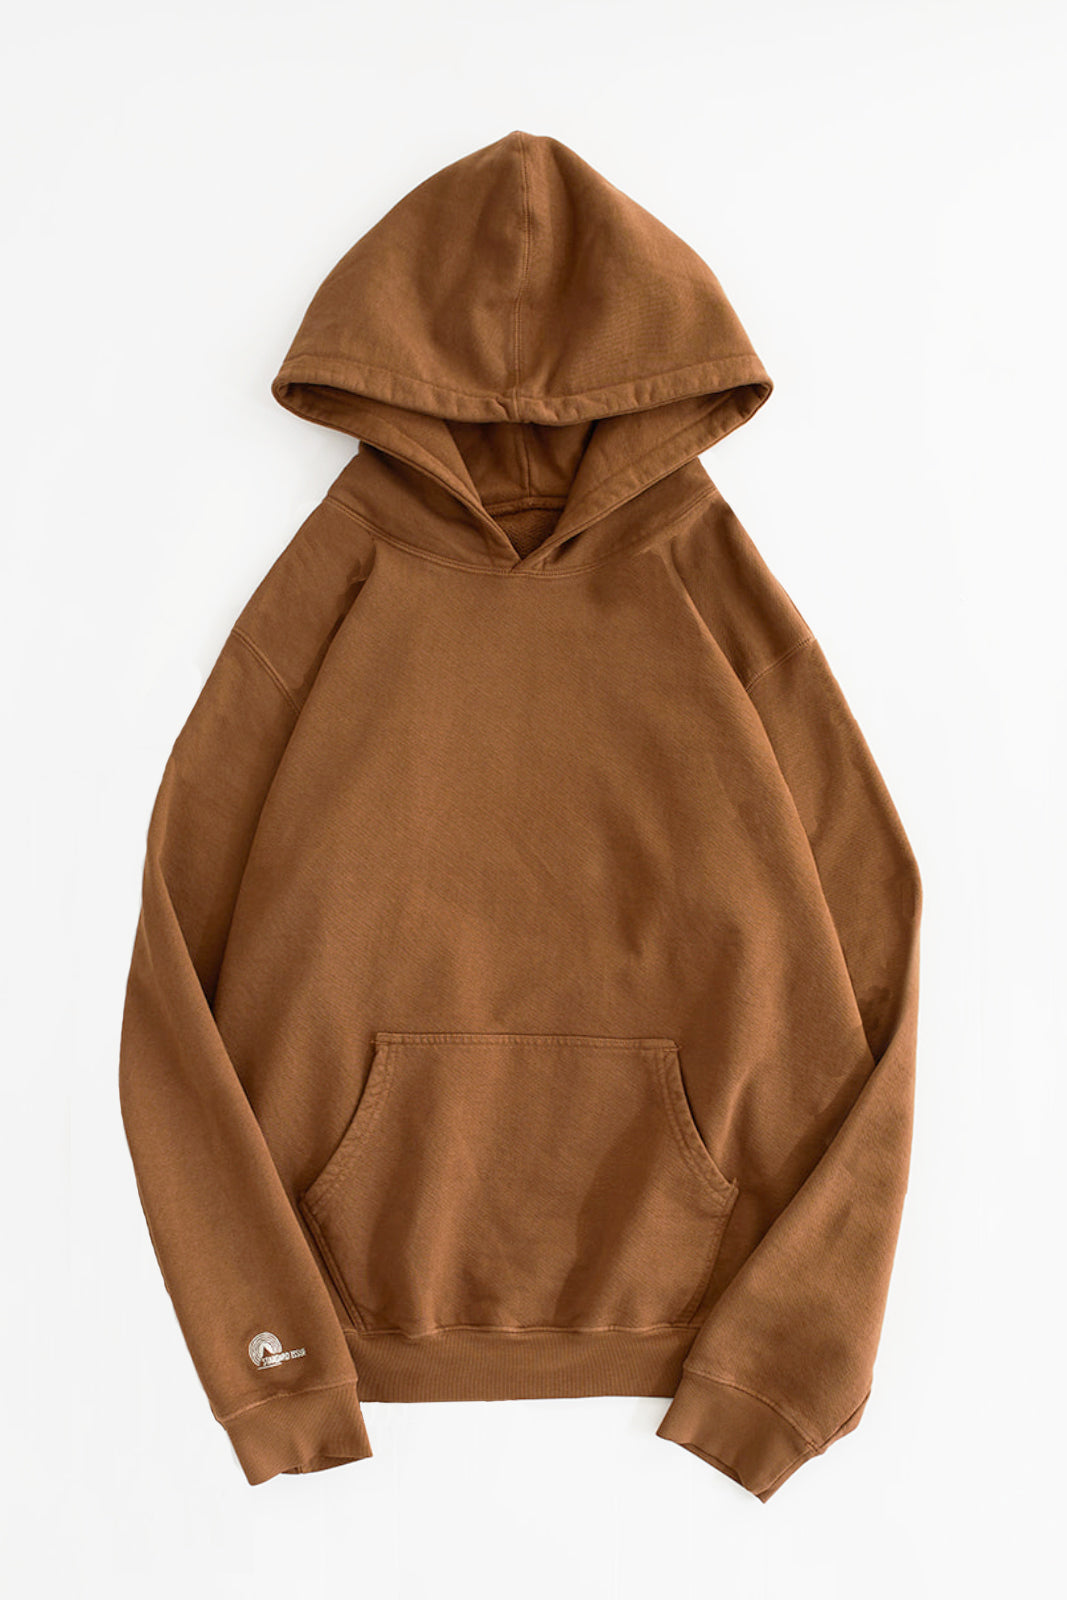 STANDARD ISSUE FOR 18 EAST - TOFFEE HOODED SWEATSHIRT